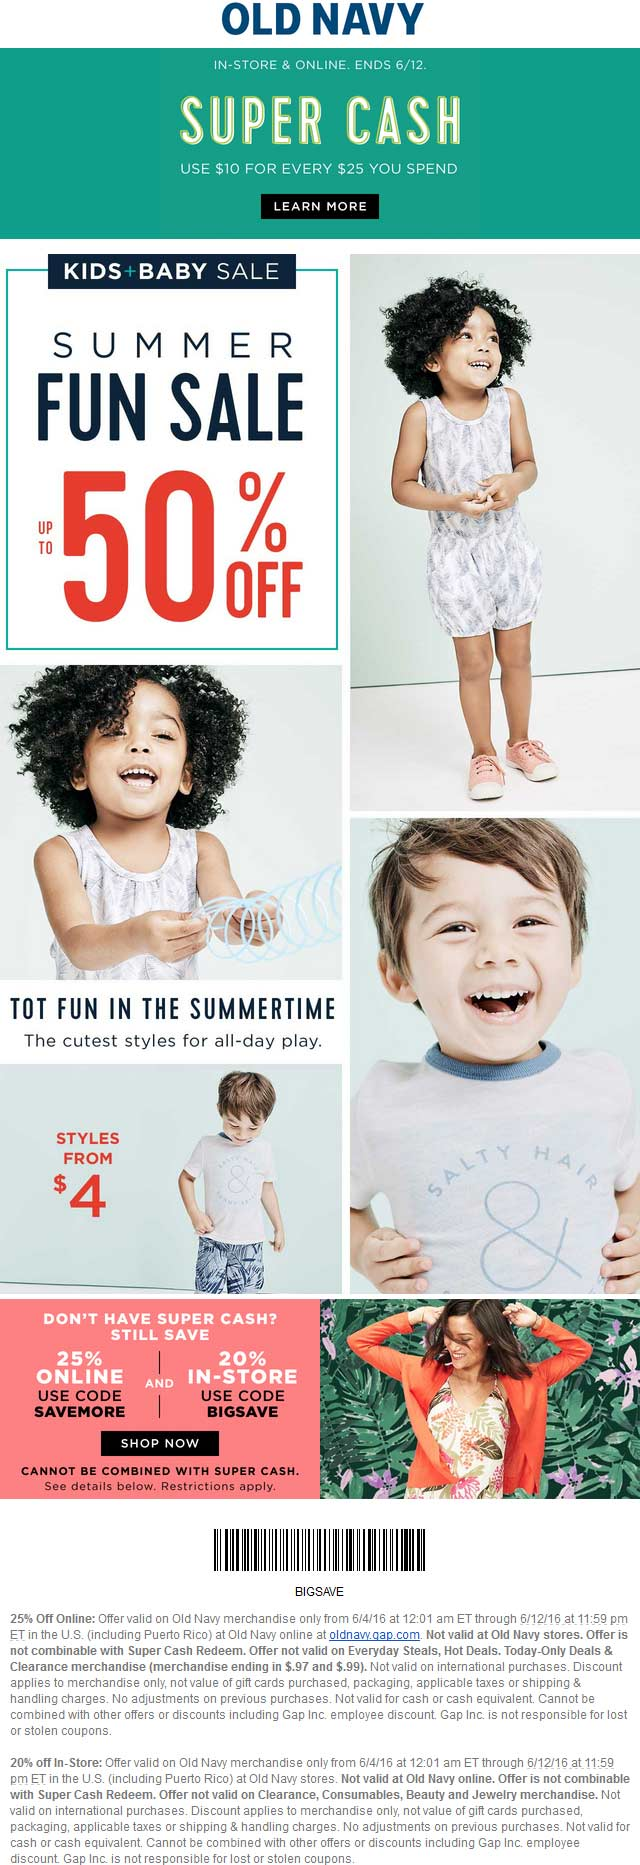 Old Navy Coupon May 2017 20% off at Old Navy, or 25% online via promo code SAVEMORE